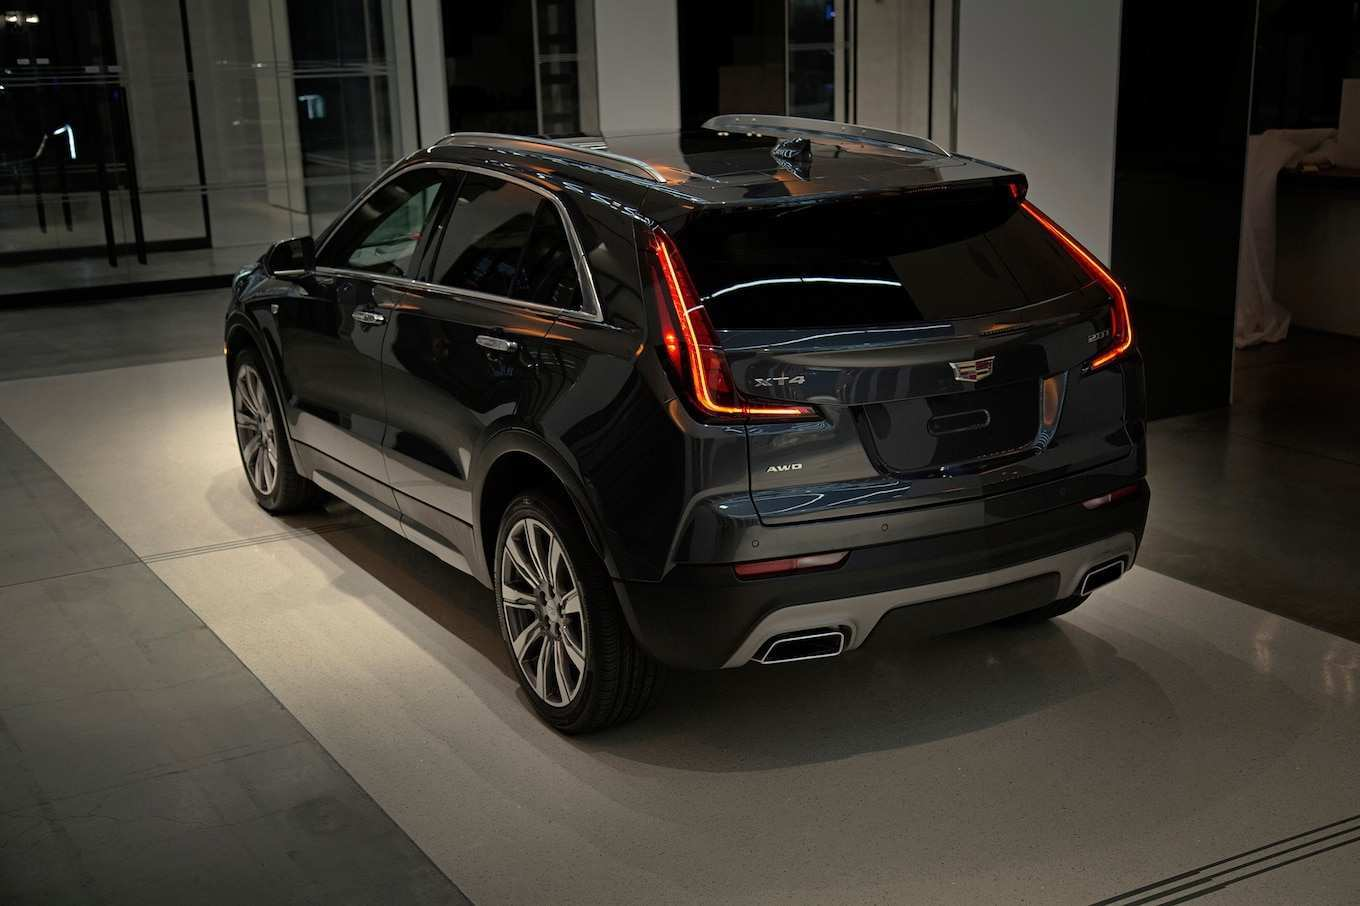 53 All New New Cadillac 2019 Xt4 Price First Drive for New Cadillac 2019 Xt4 Price